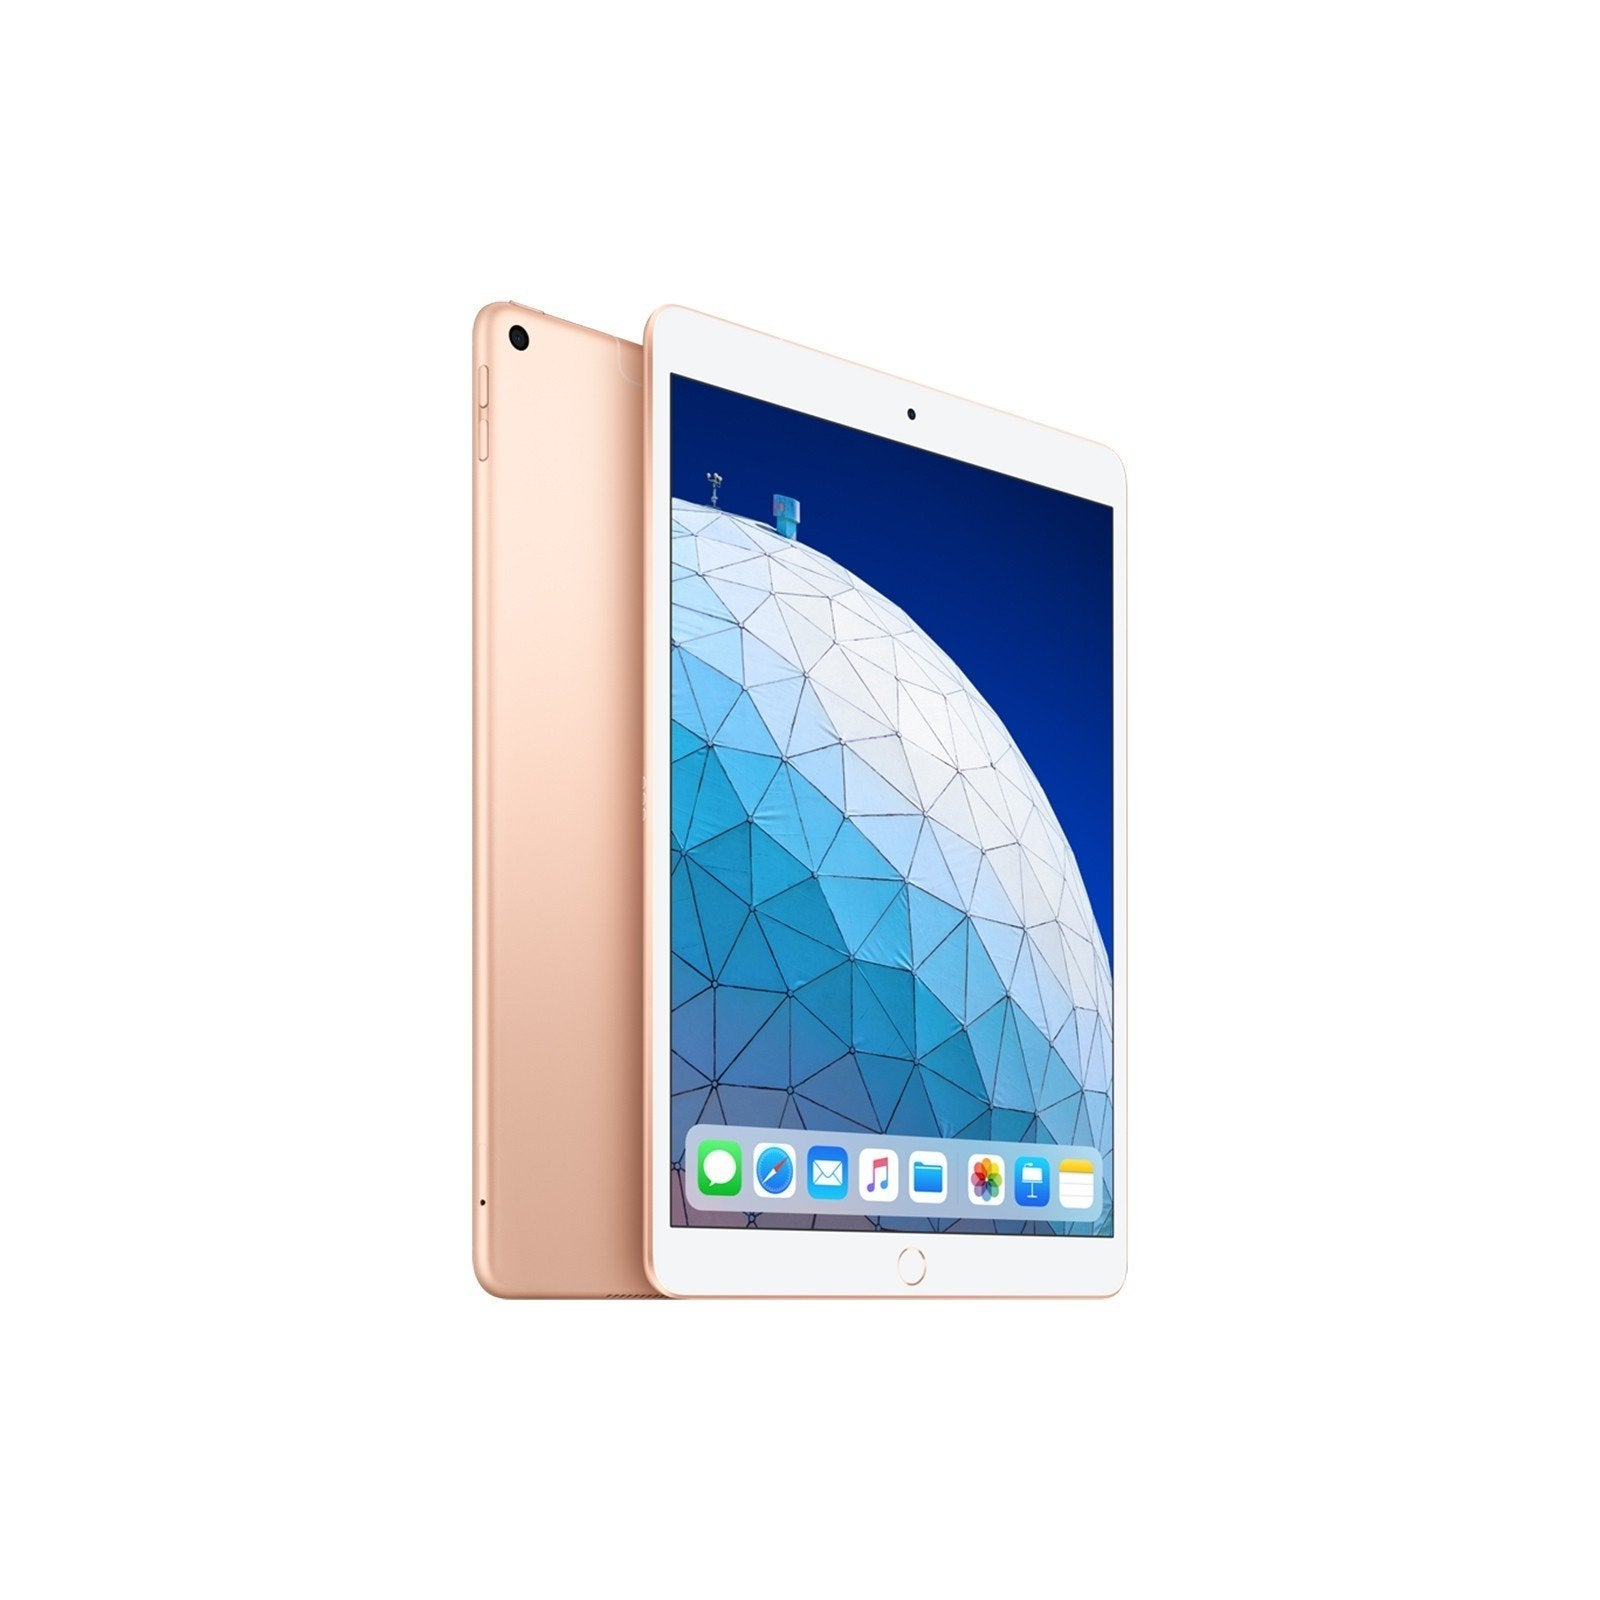 iPad Air 3-Wifi + Cellular 64GB iStore